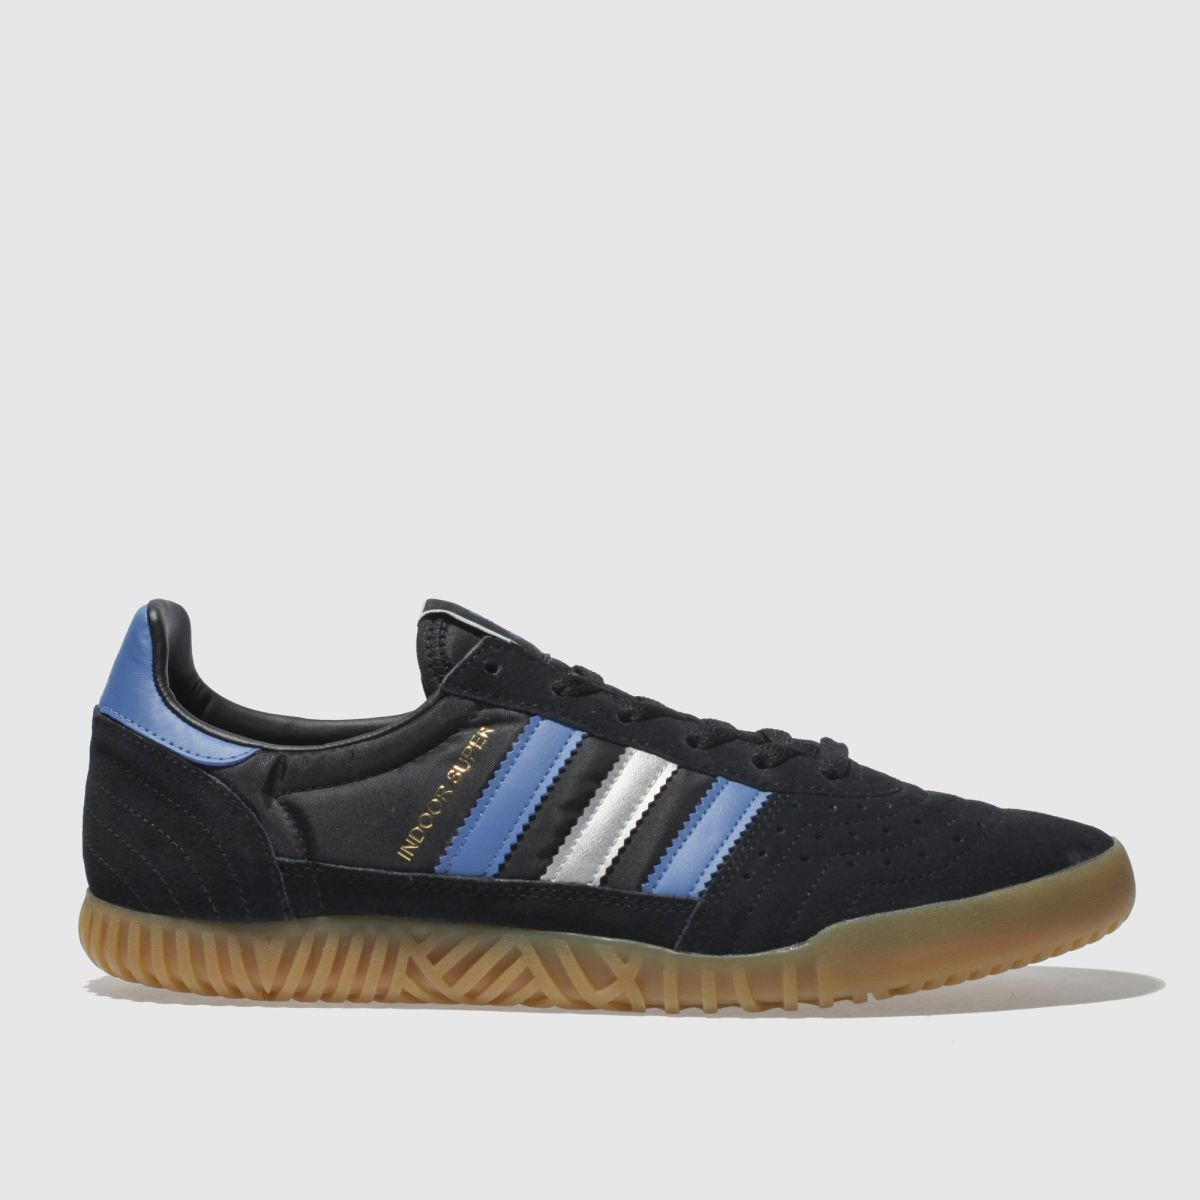 Adidas Black And Blue Indoor Super Trainers